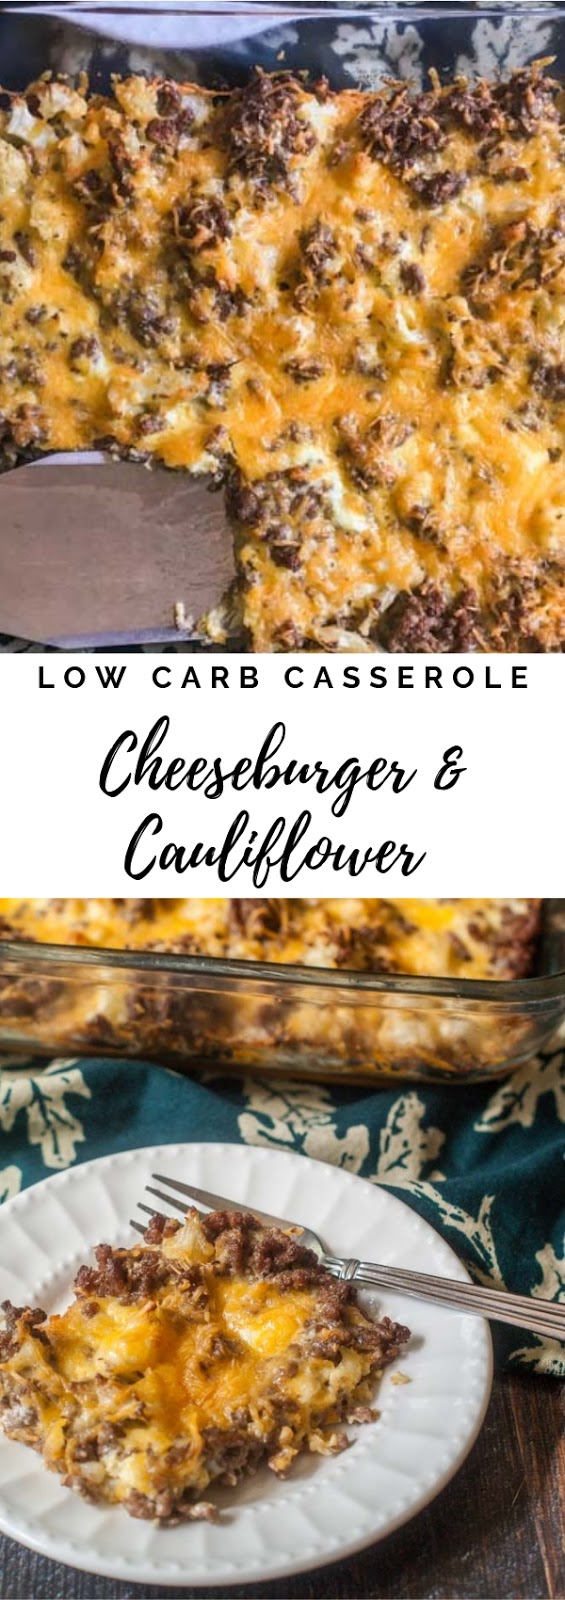 Low Carb Cheeseburger & Cauliflower Cauliflower #dinner #maincourse #lowcarb #cheeseburger #cauliflower